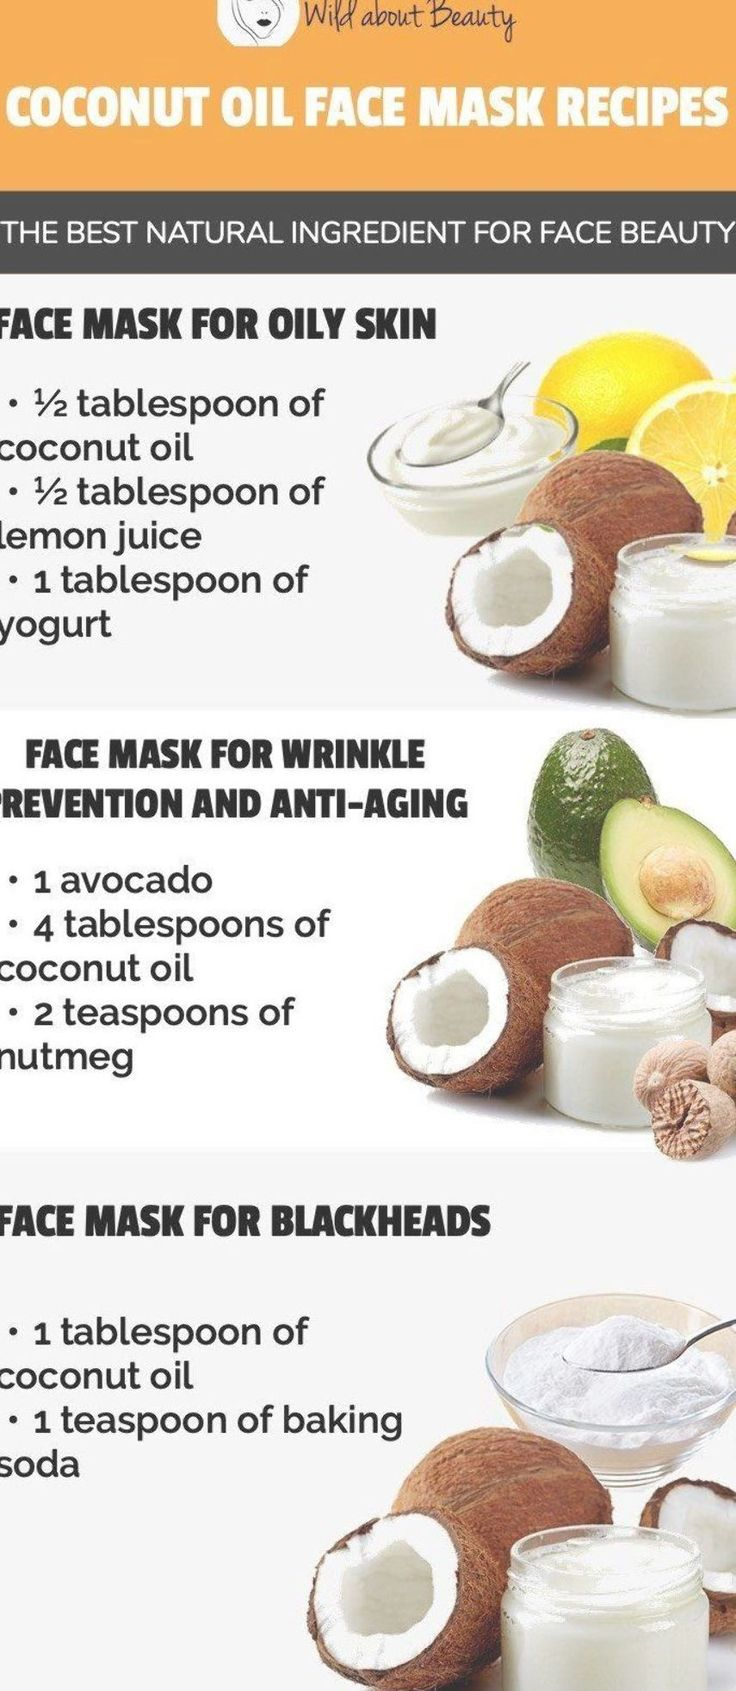 8 Coconut Oil Face Mask Recipes – The Best Natural Ingredient for Face Beauty …